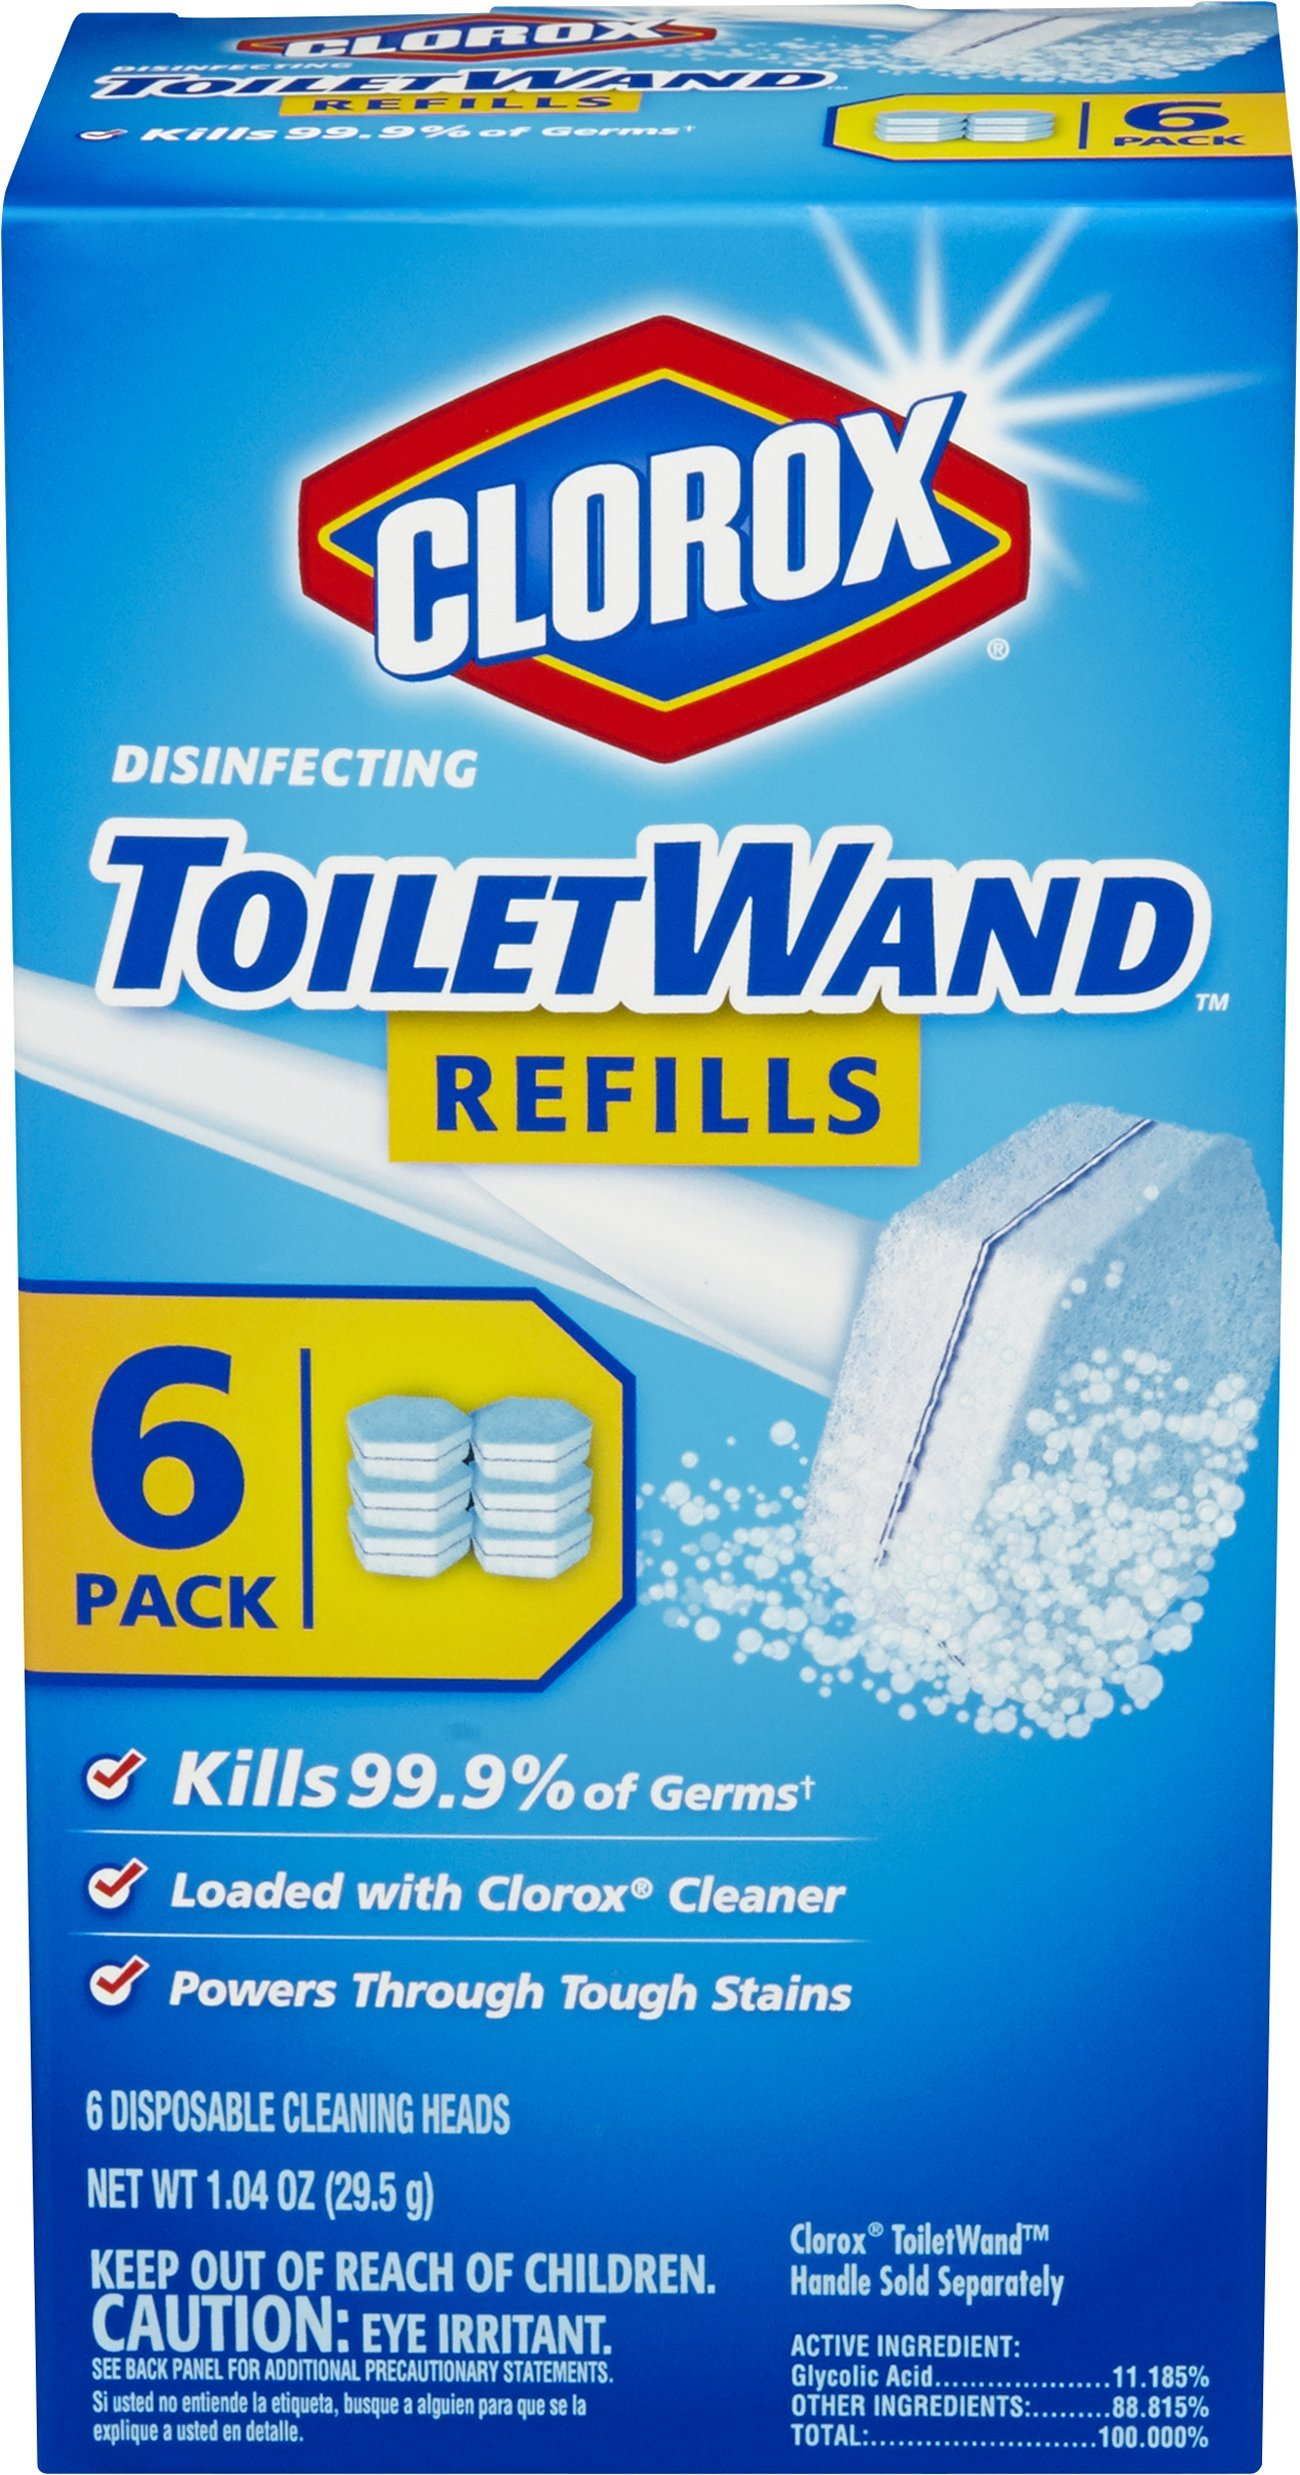 Clorox ToiletWand Disinfecting Refills, 6 Count (Pack of 8) by Clorox